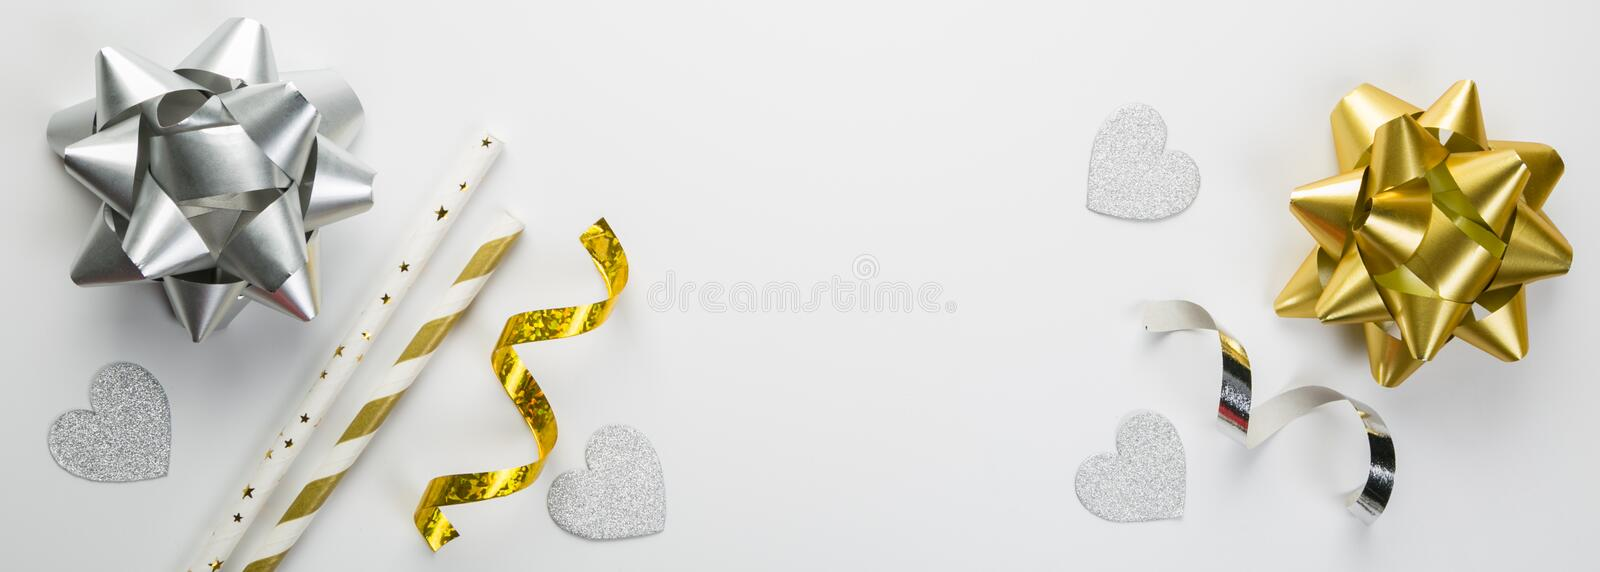 Birthday concept - silver and gold decorations on white background. Flat lay, top view royalty free stock photo